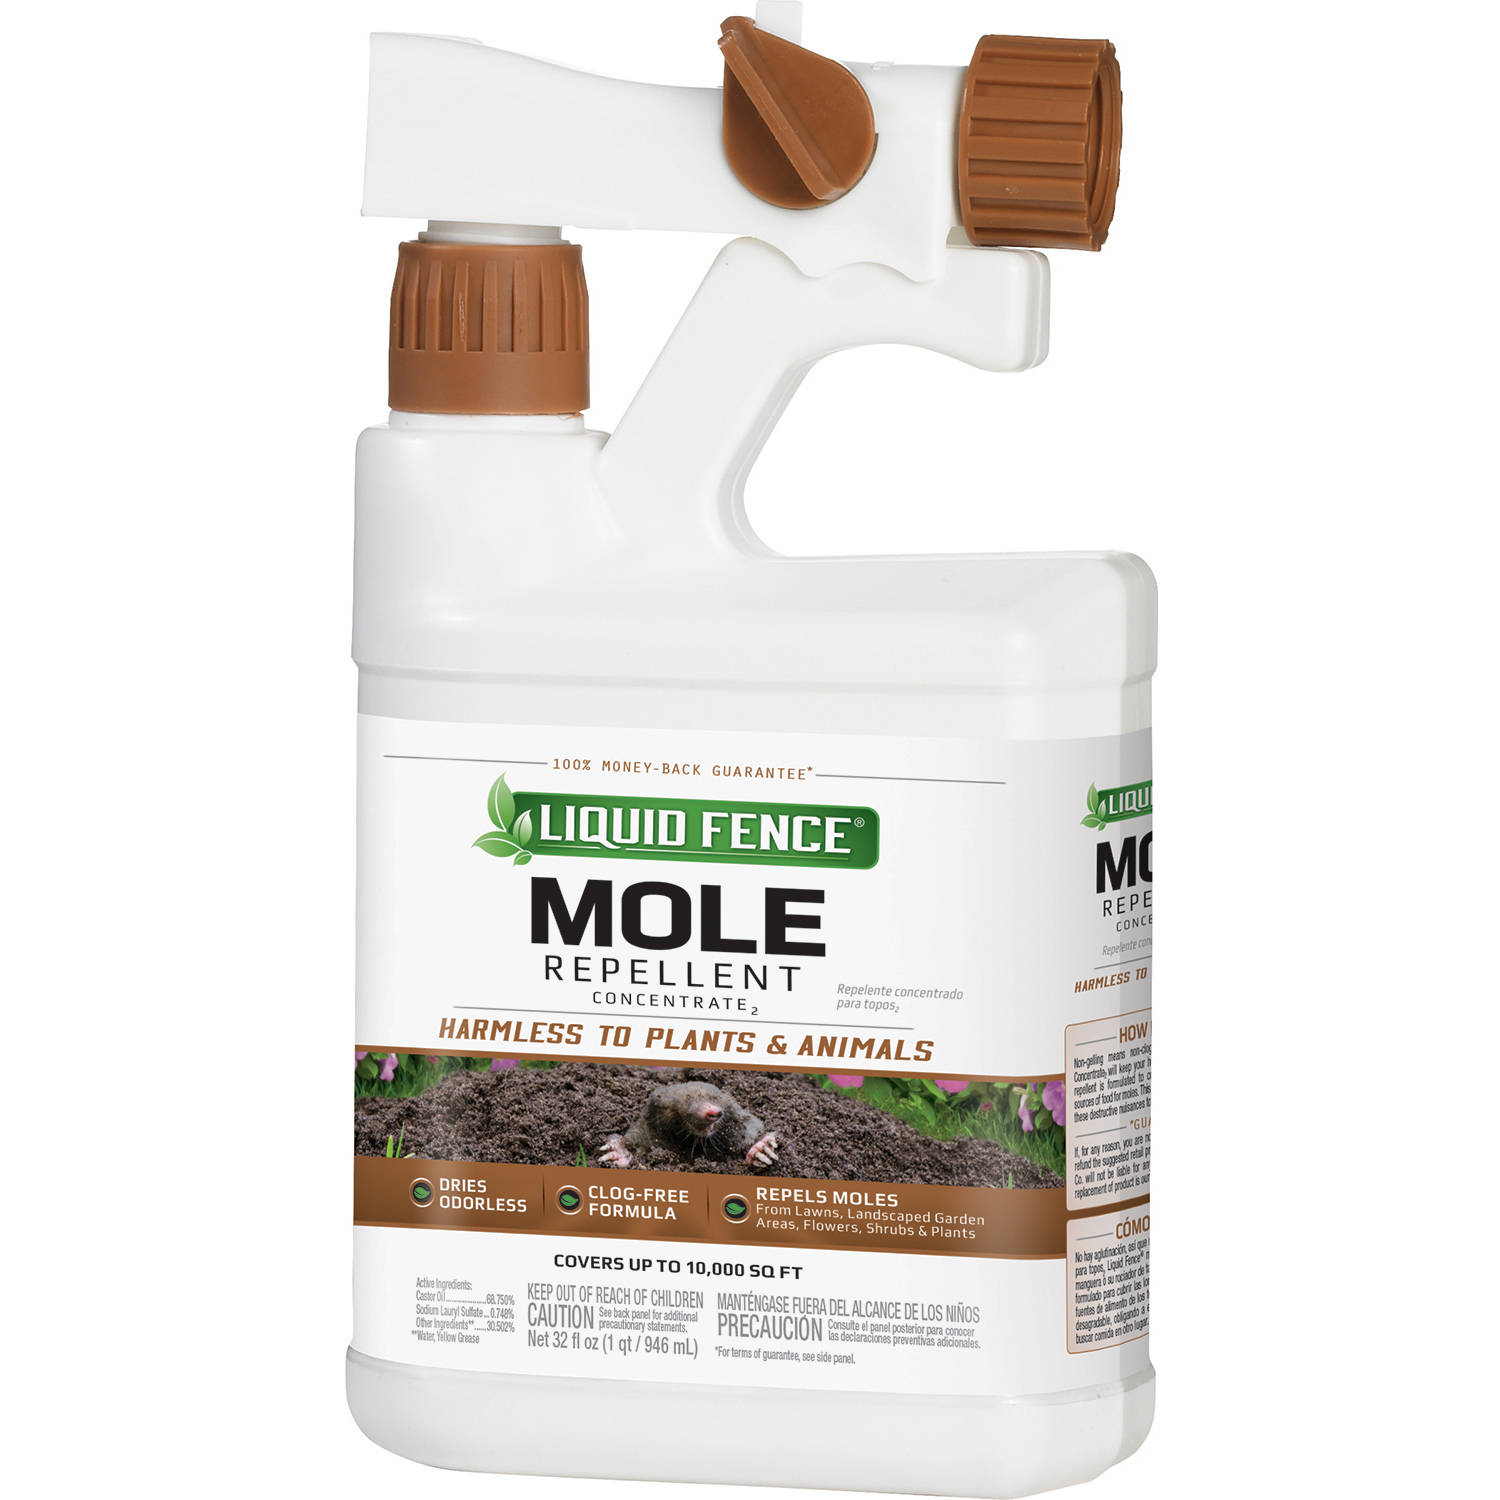 Liquid Fence Mole Repellent Ready-to-Spray, 32 oz